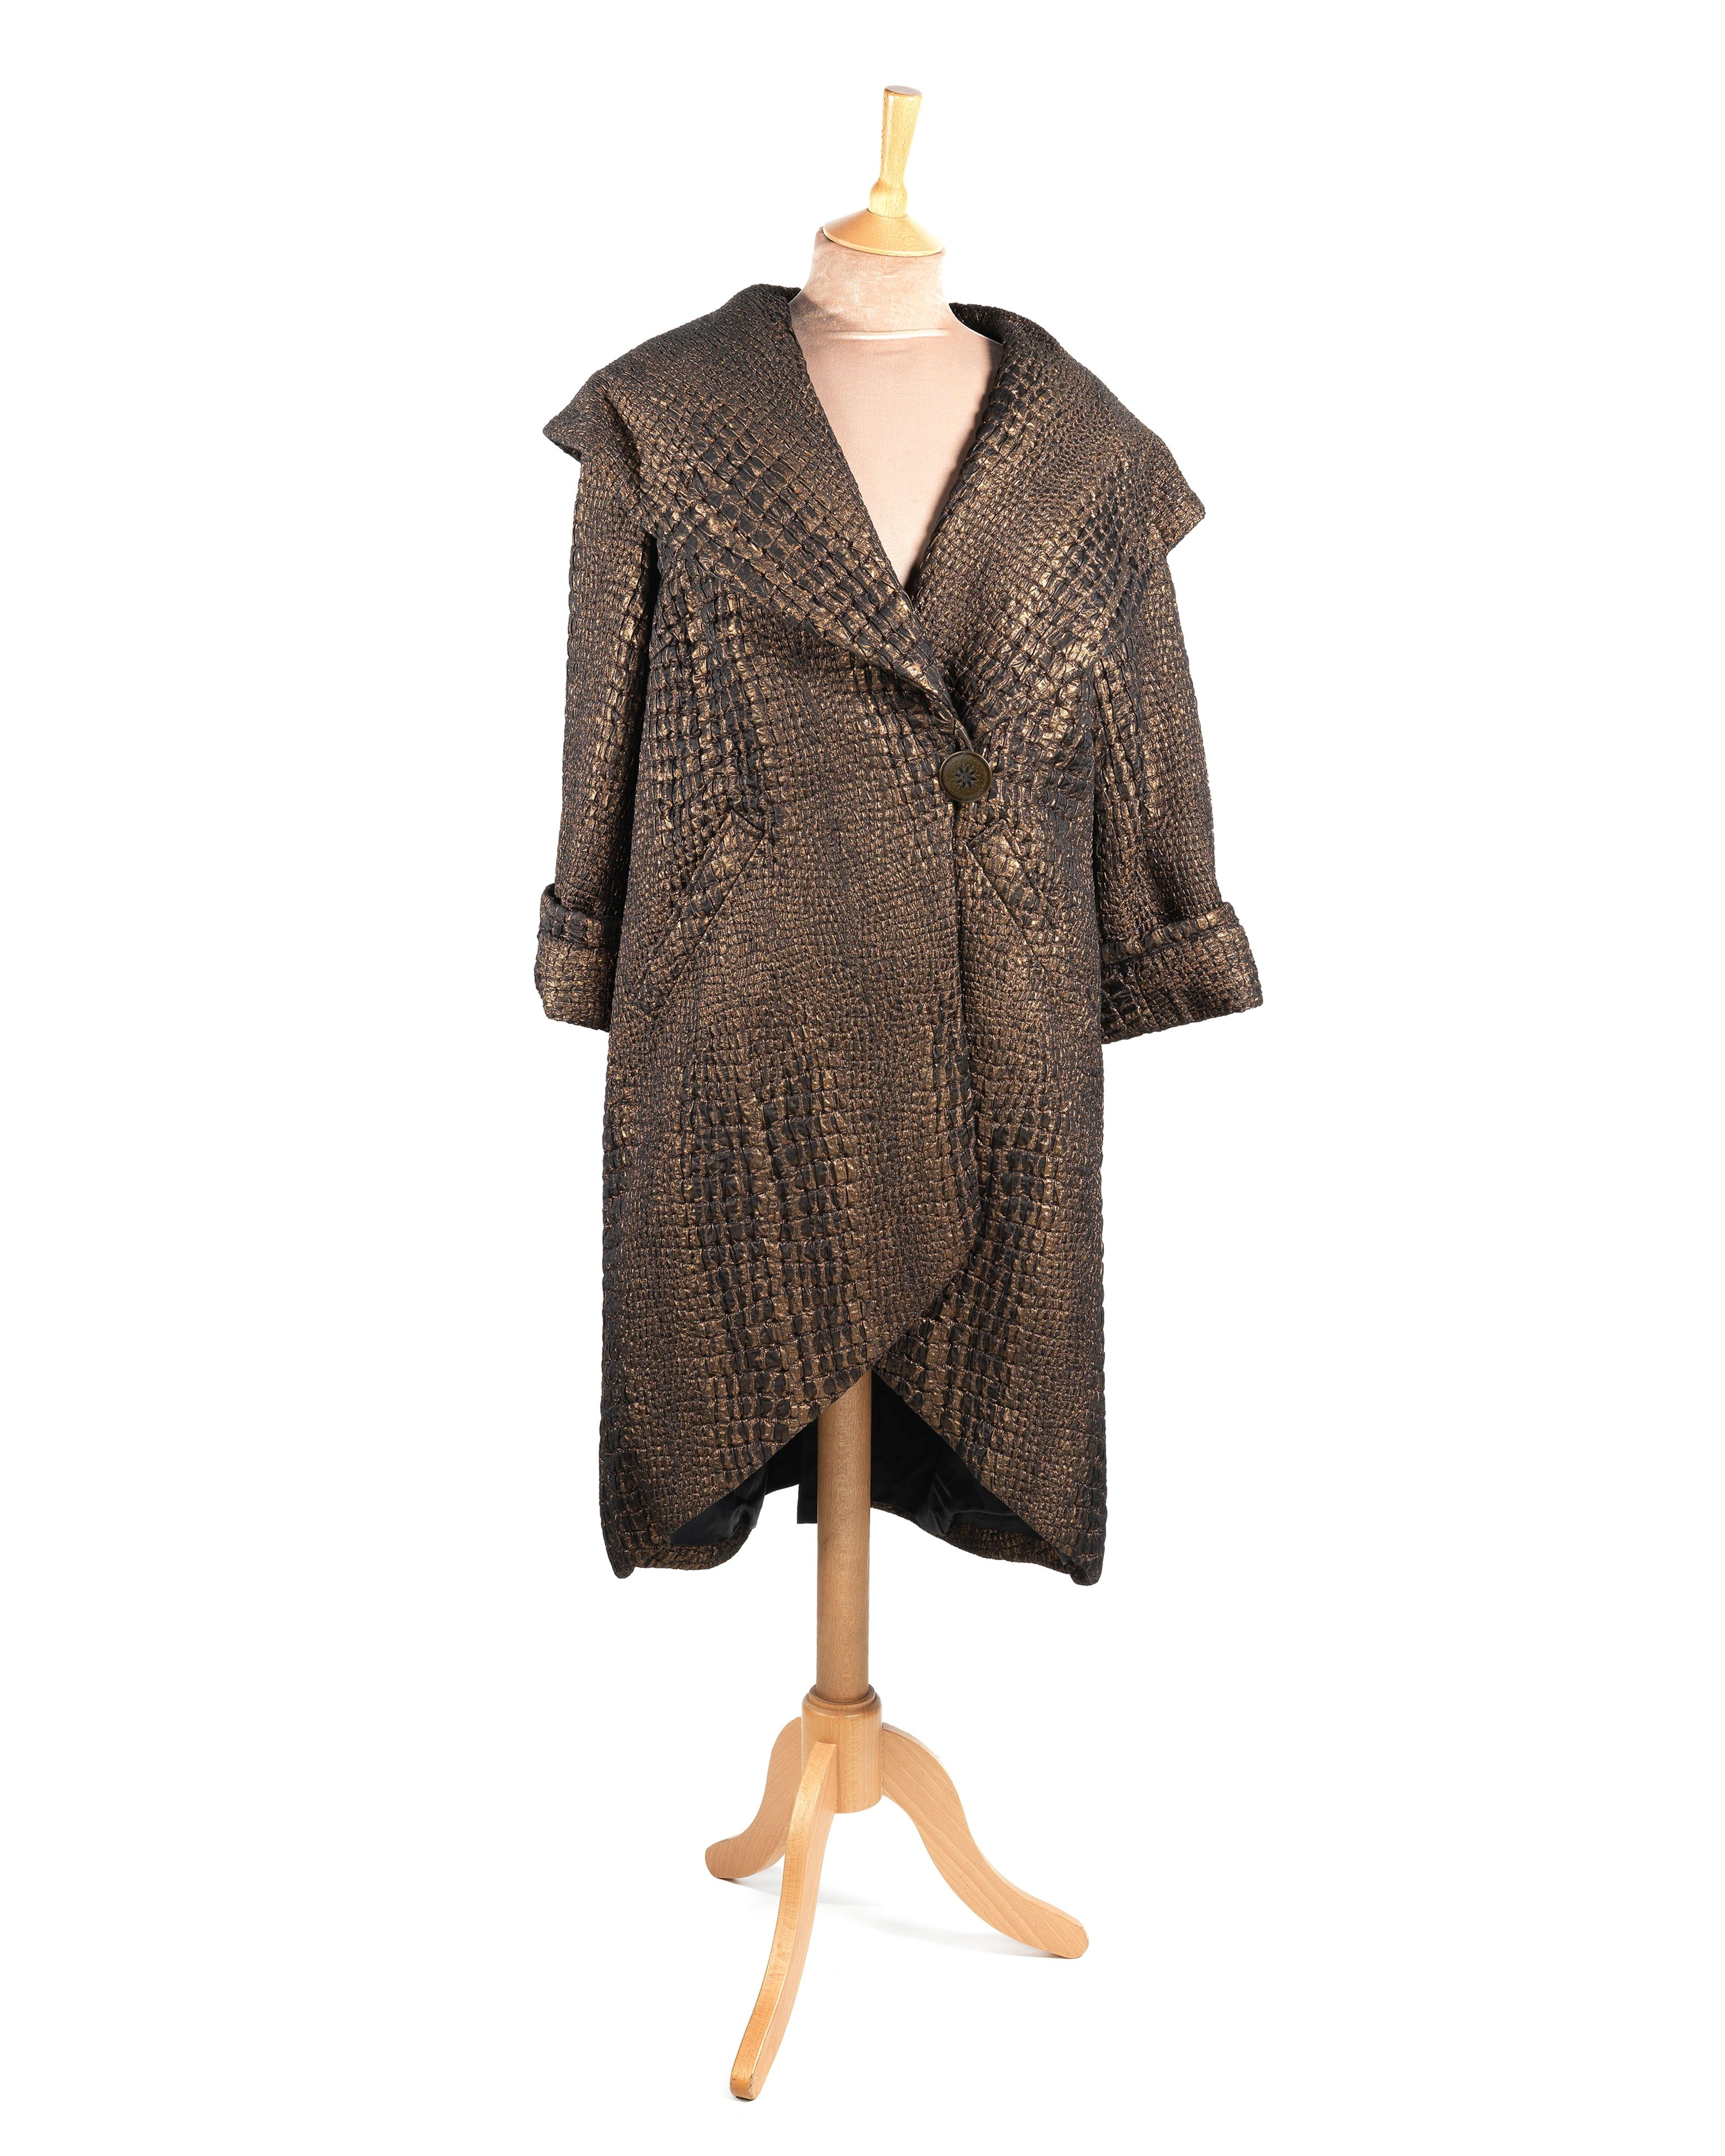 The Children Act: A screen-used bronze brocade evening coat worn by Emma Thompson for her role as...